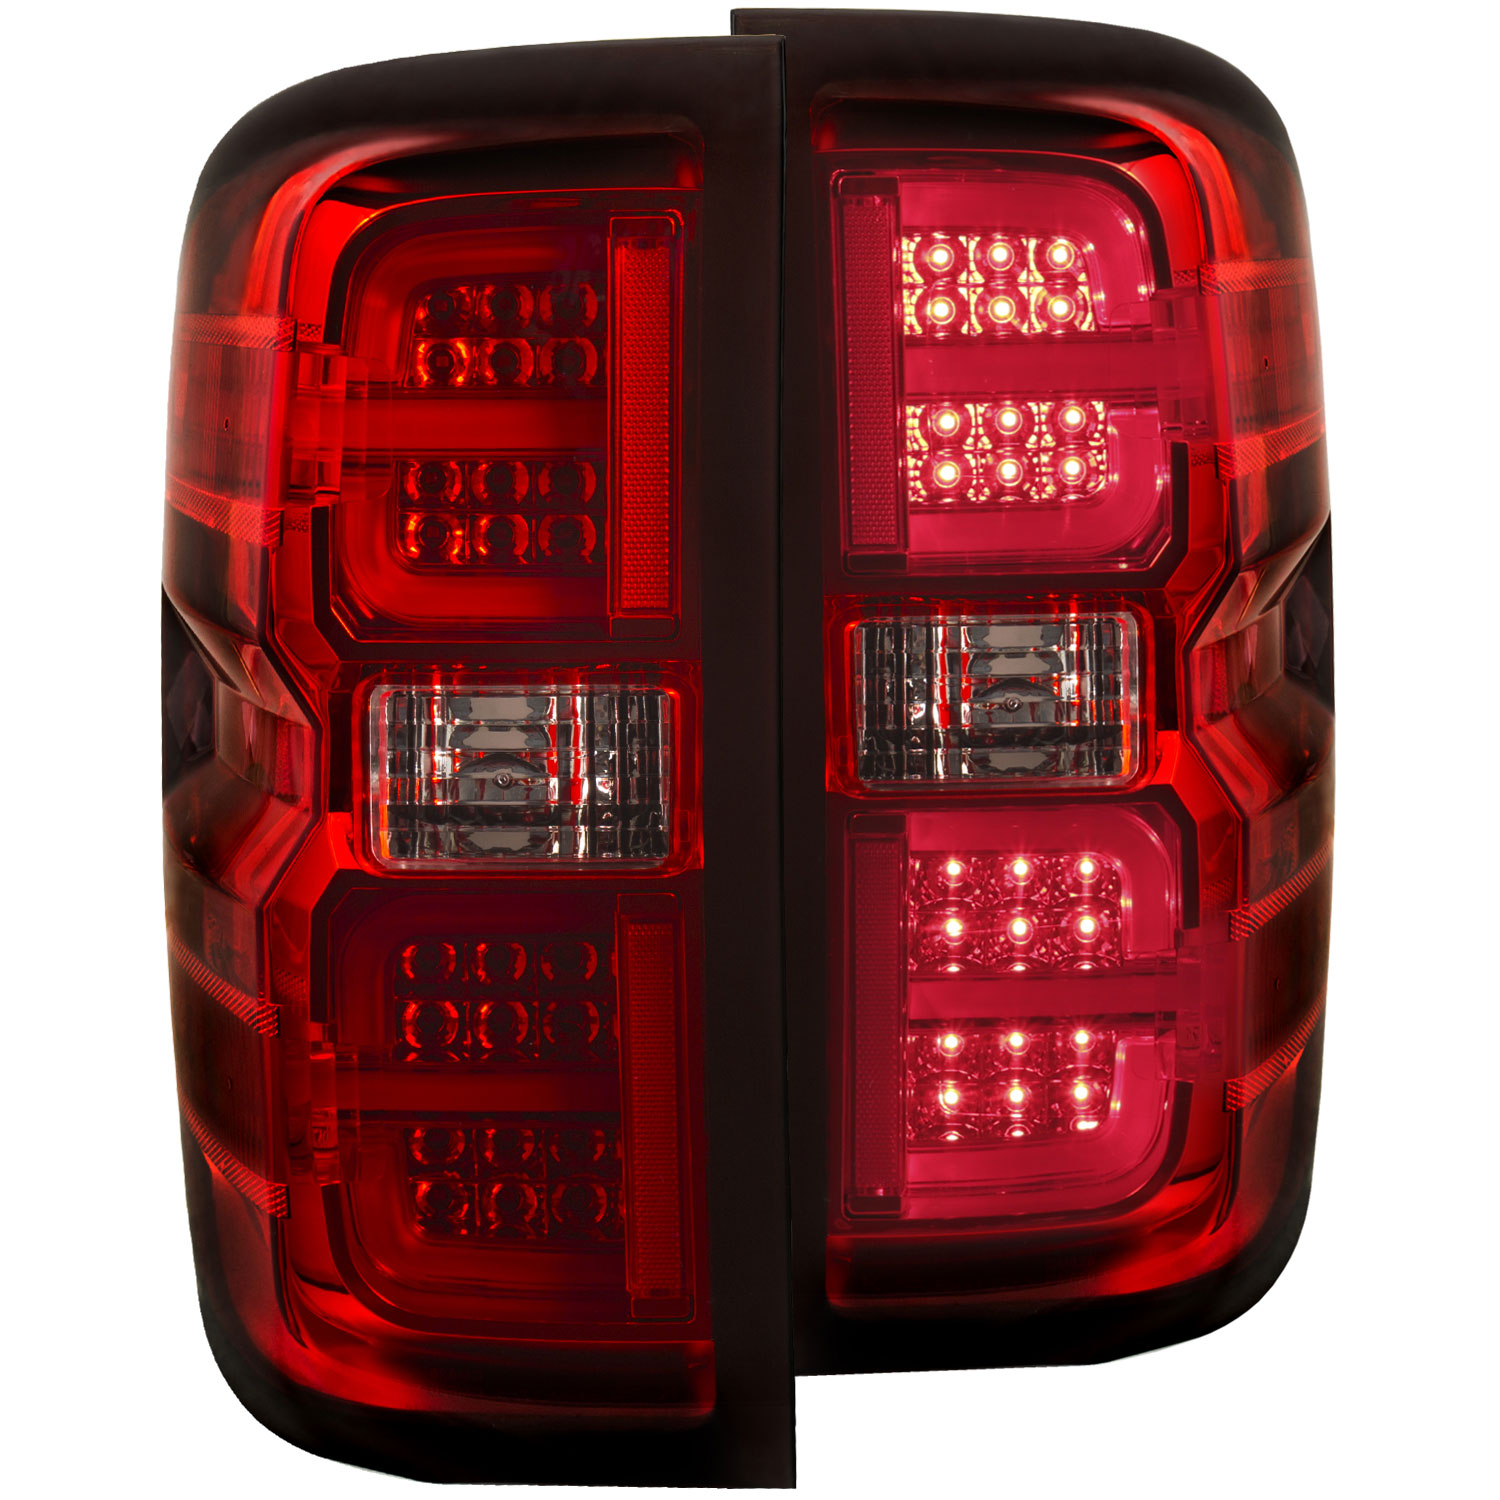 Anzo 311249 | ANZO USA Chevrolet Silverado Hd Led Taillights Red/Clear; 2015-2018